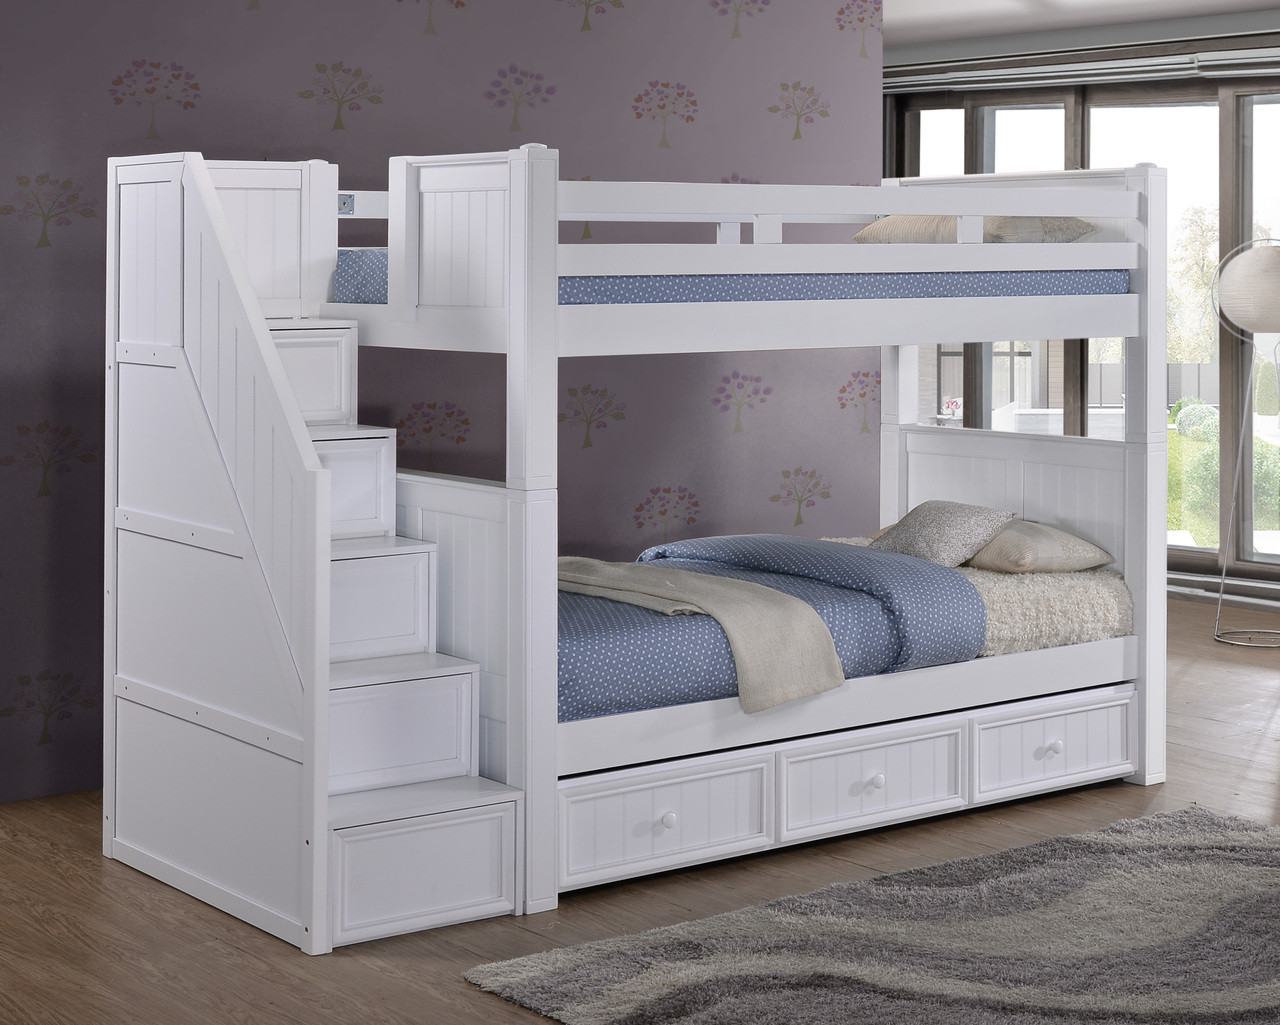 Bed Over Stair Box With Storage And Stairs: Dillon Twin Over Twin Wood Bunk Bed With Reversible